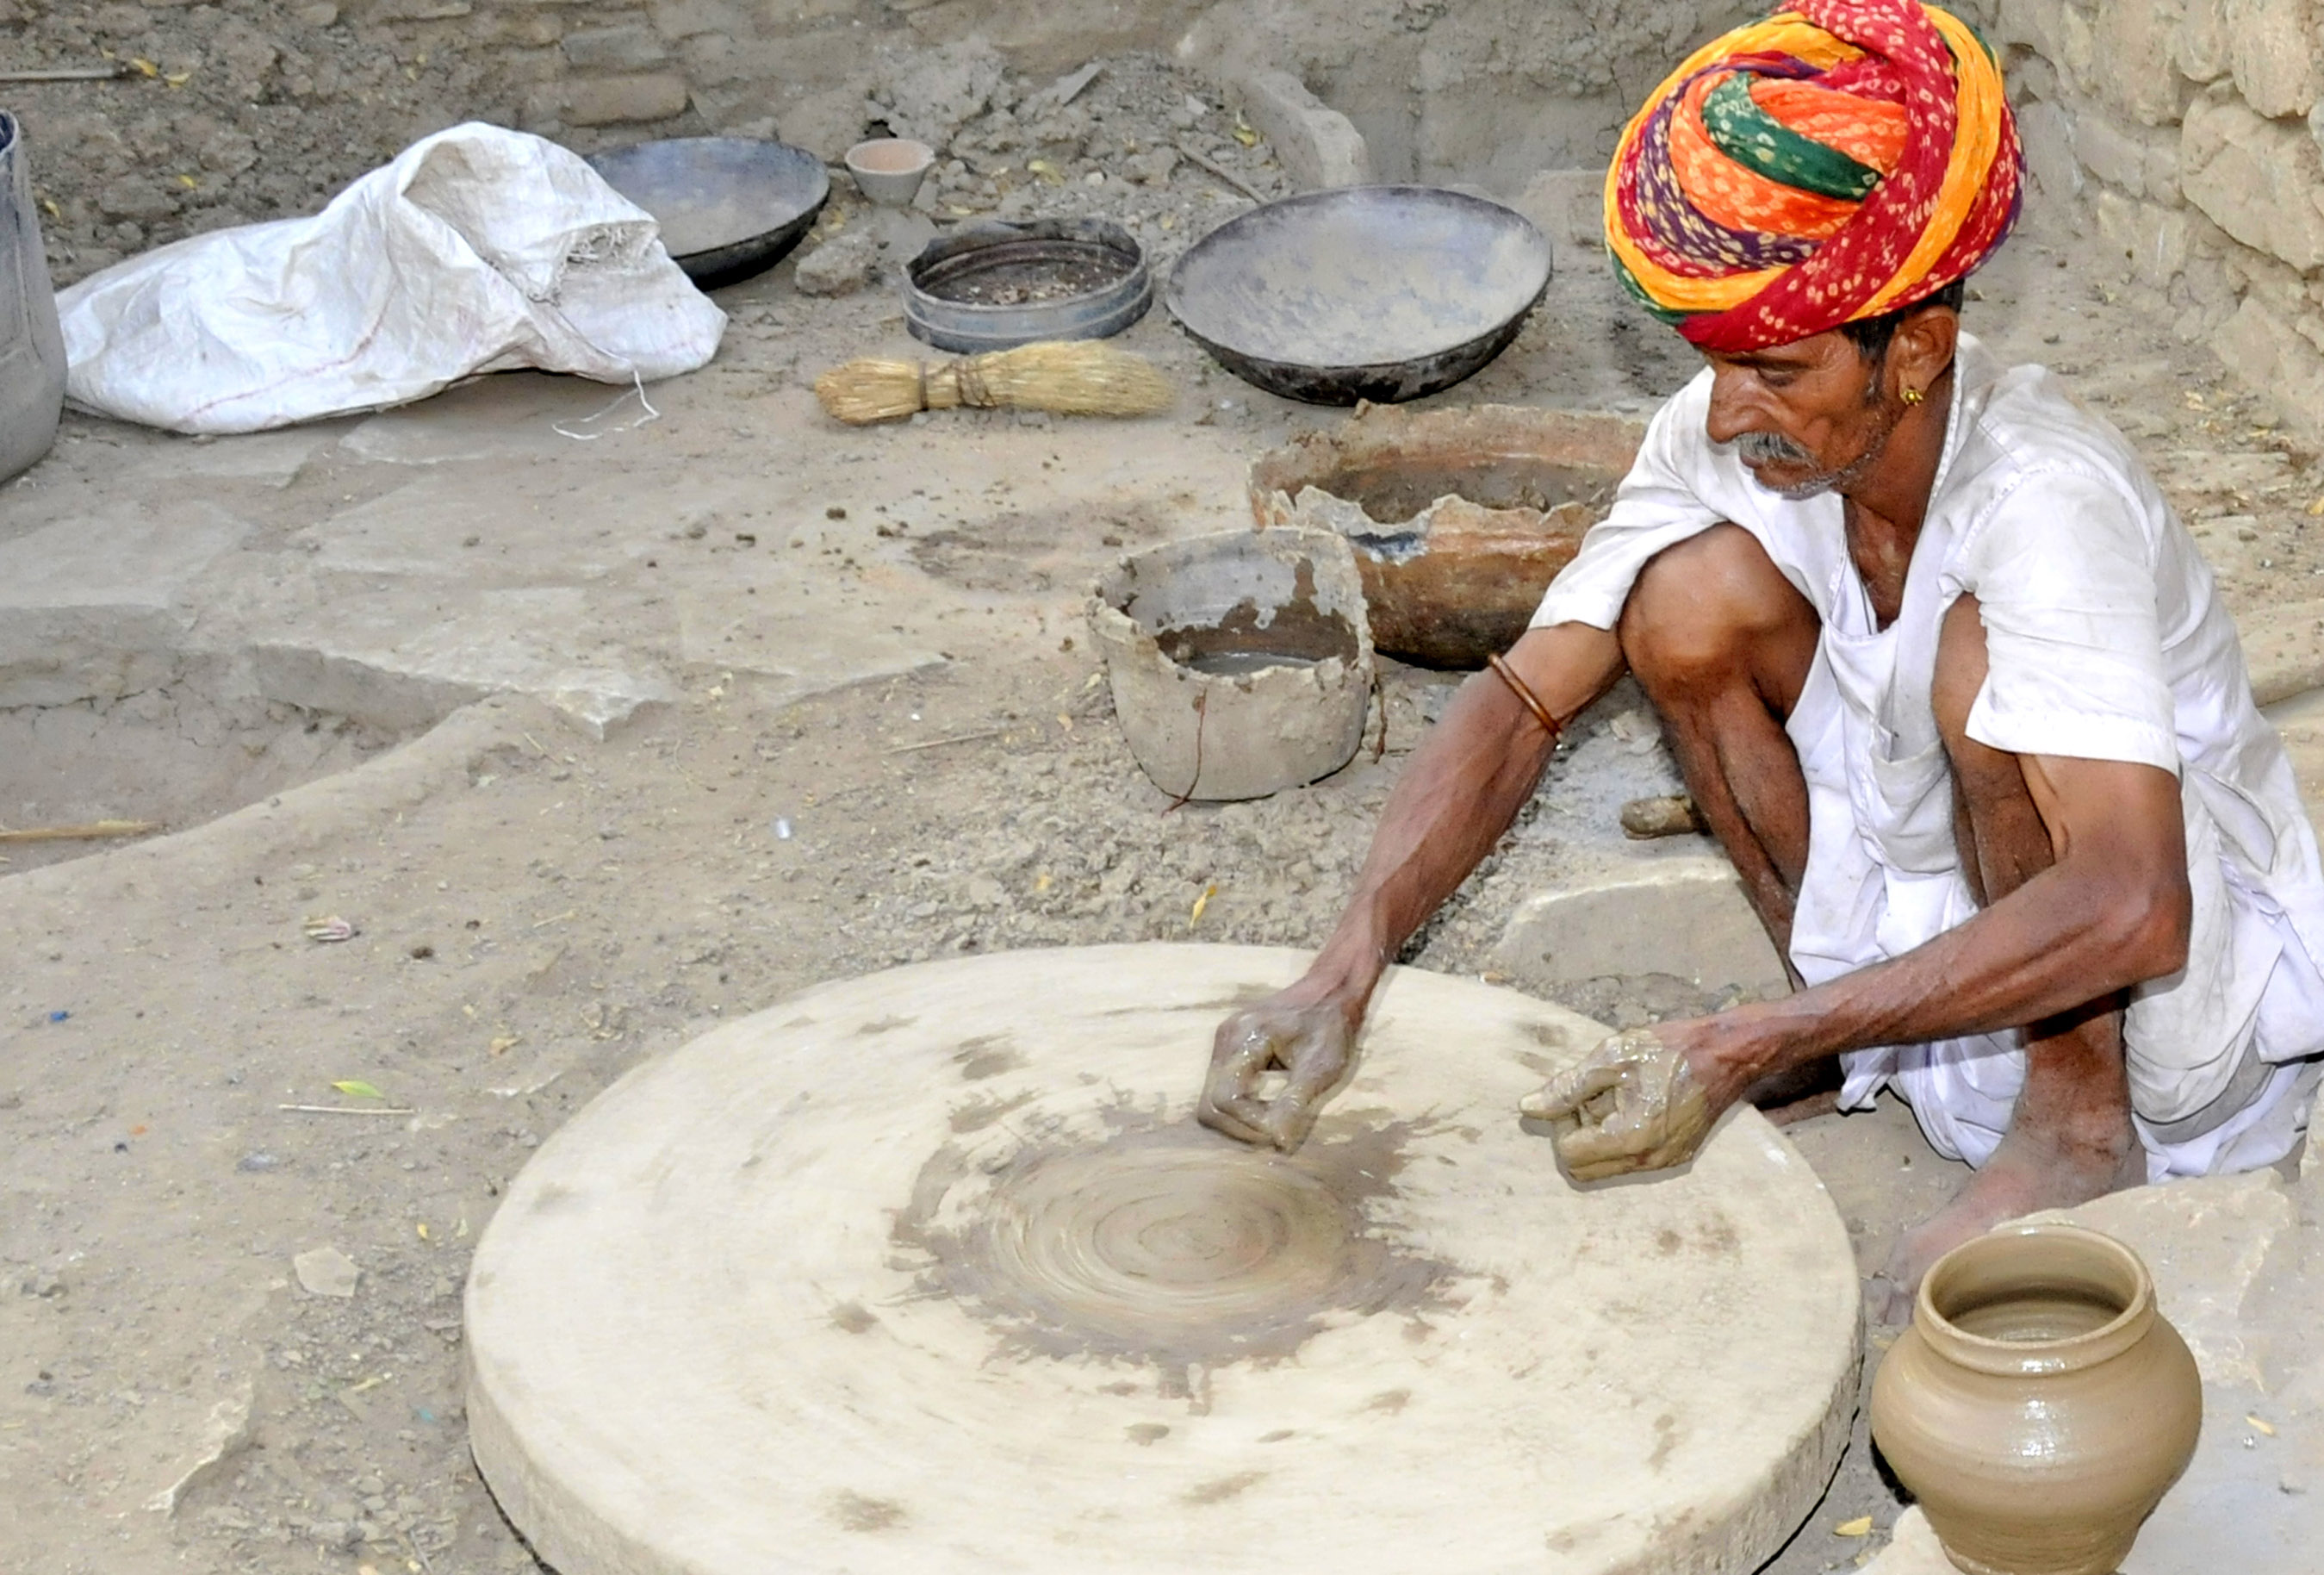 The village potter in Bangalore. (Photo by Don Knebel)